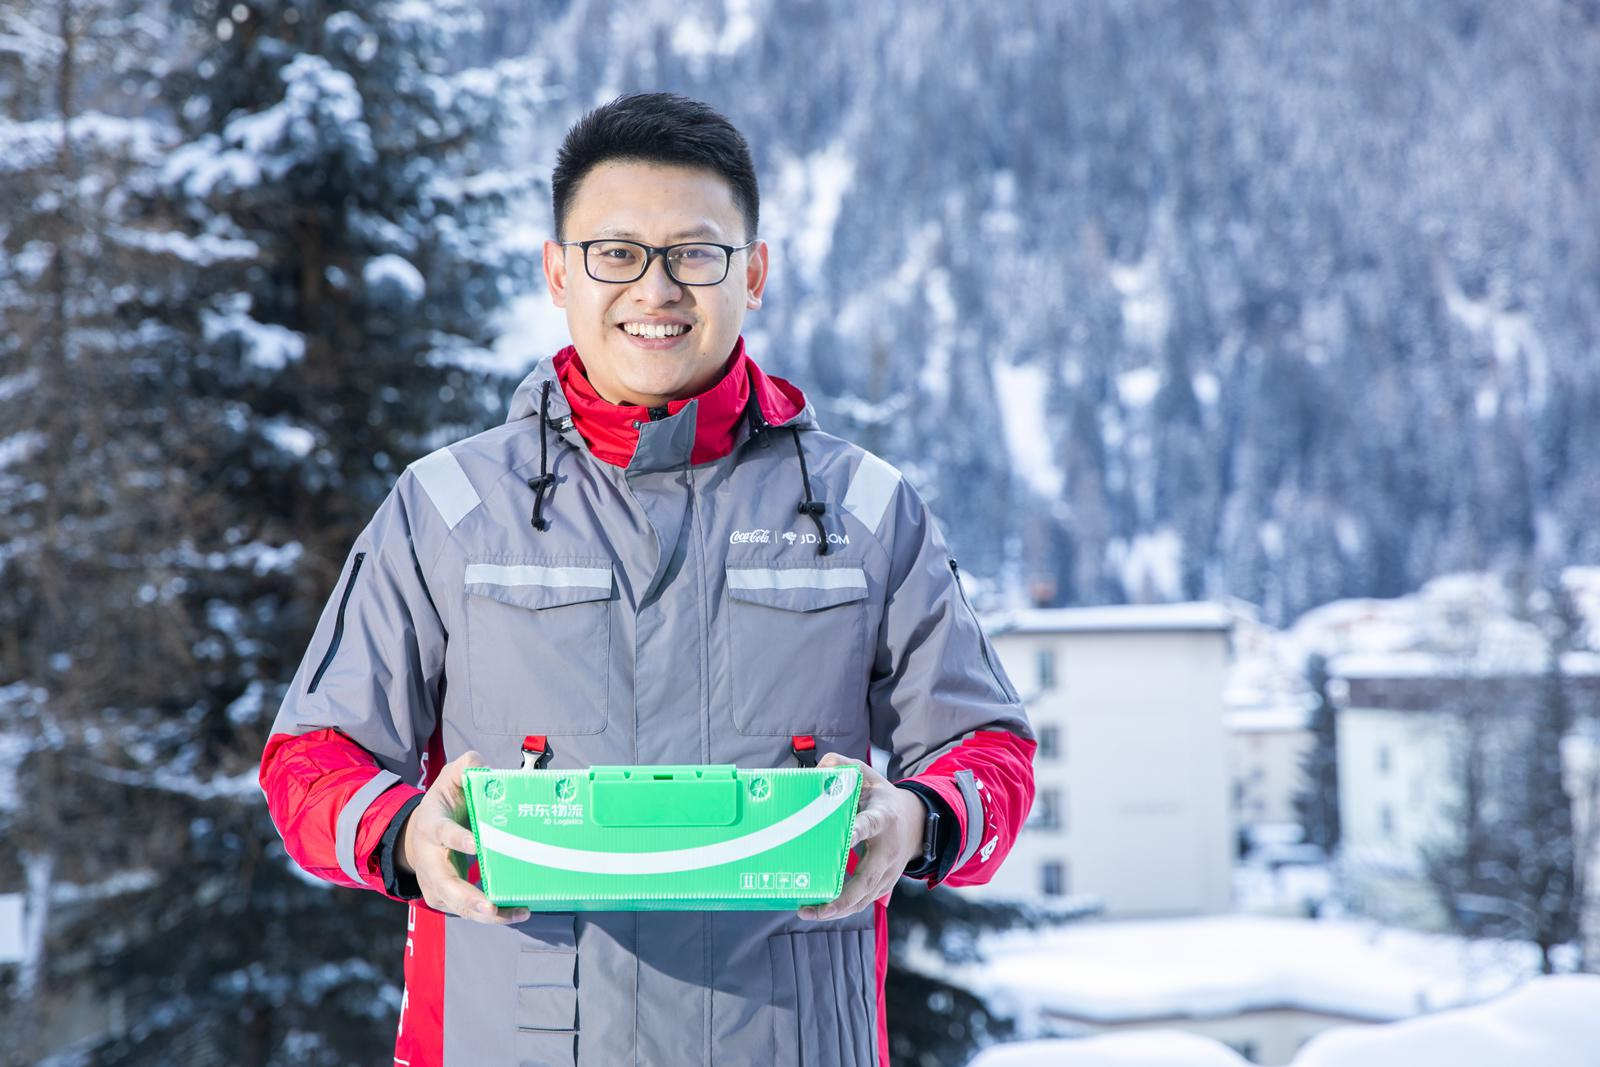 A JD.com staff wears a uniform made of recycled PET (rPET) materials co-created by Coca-Cola China and JD.com which demonstrates used PET bottles can be back to the value chain and be recycled into rPET products.